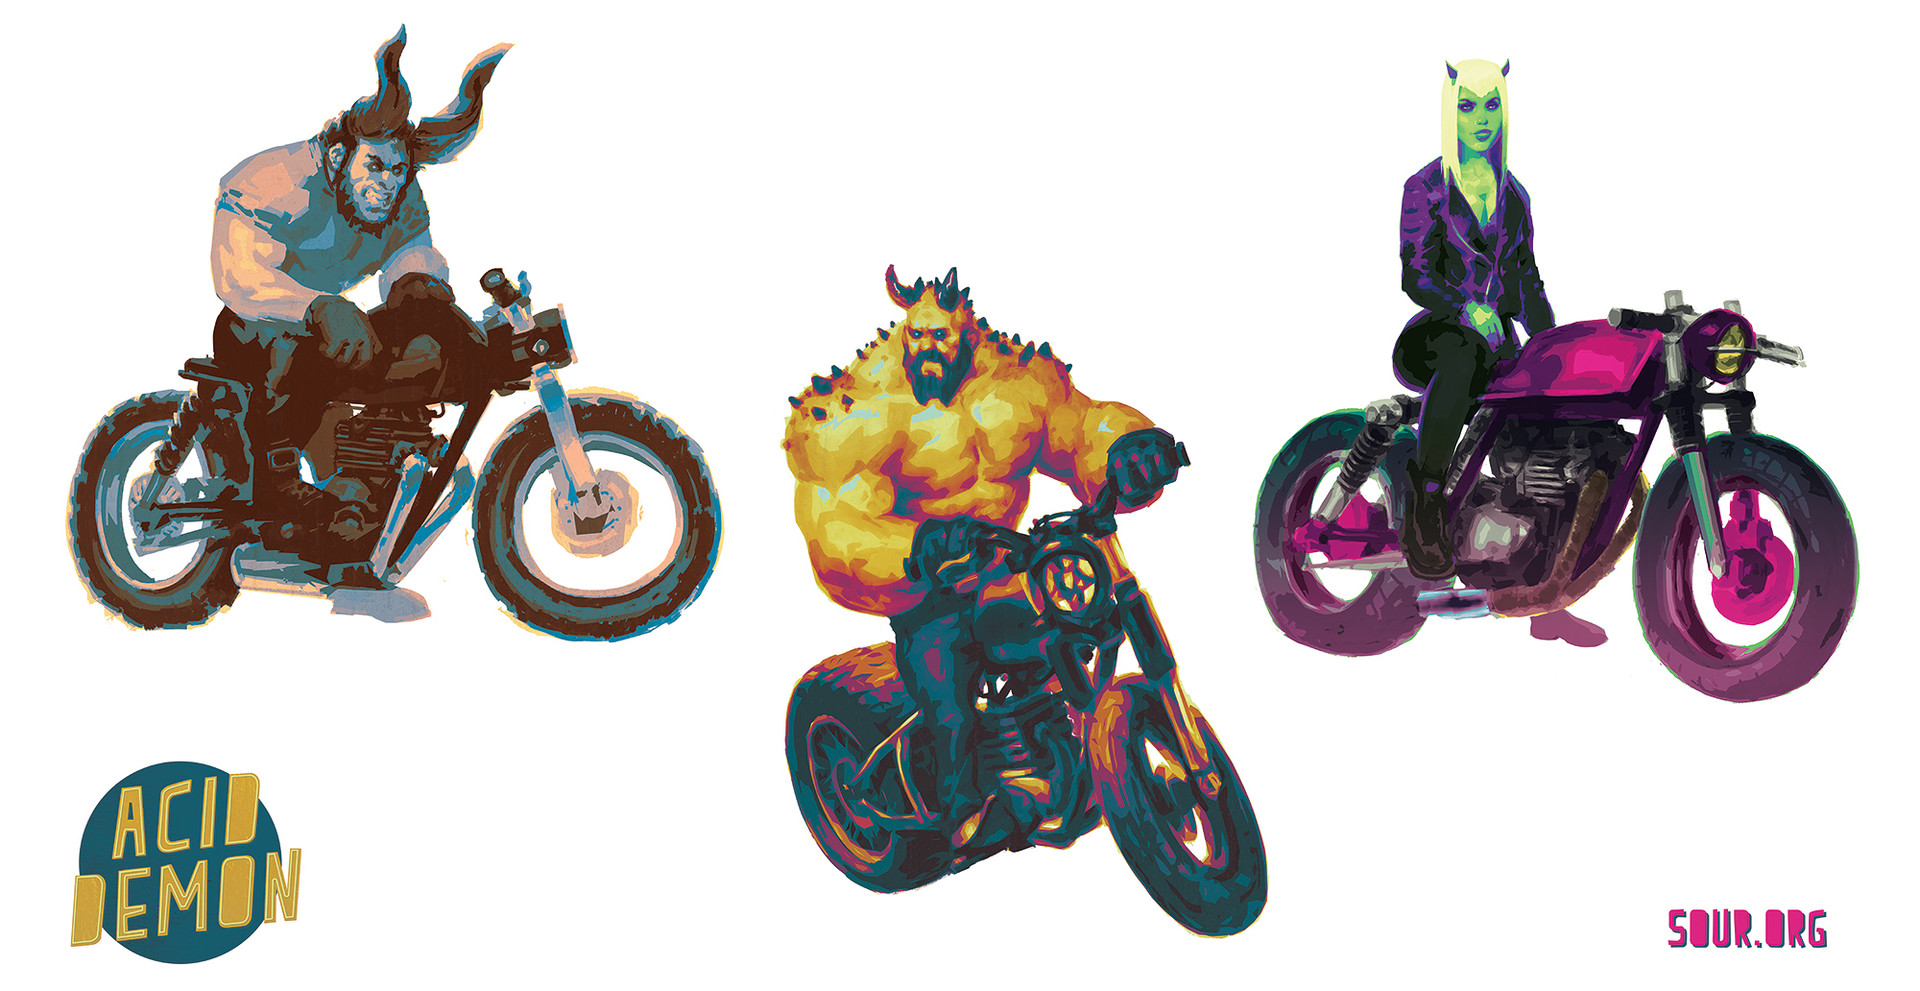 Demon biker trio.